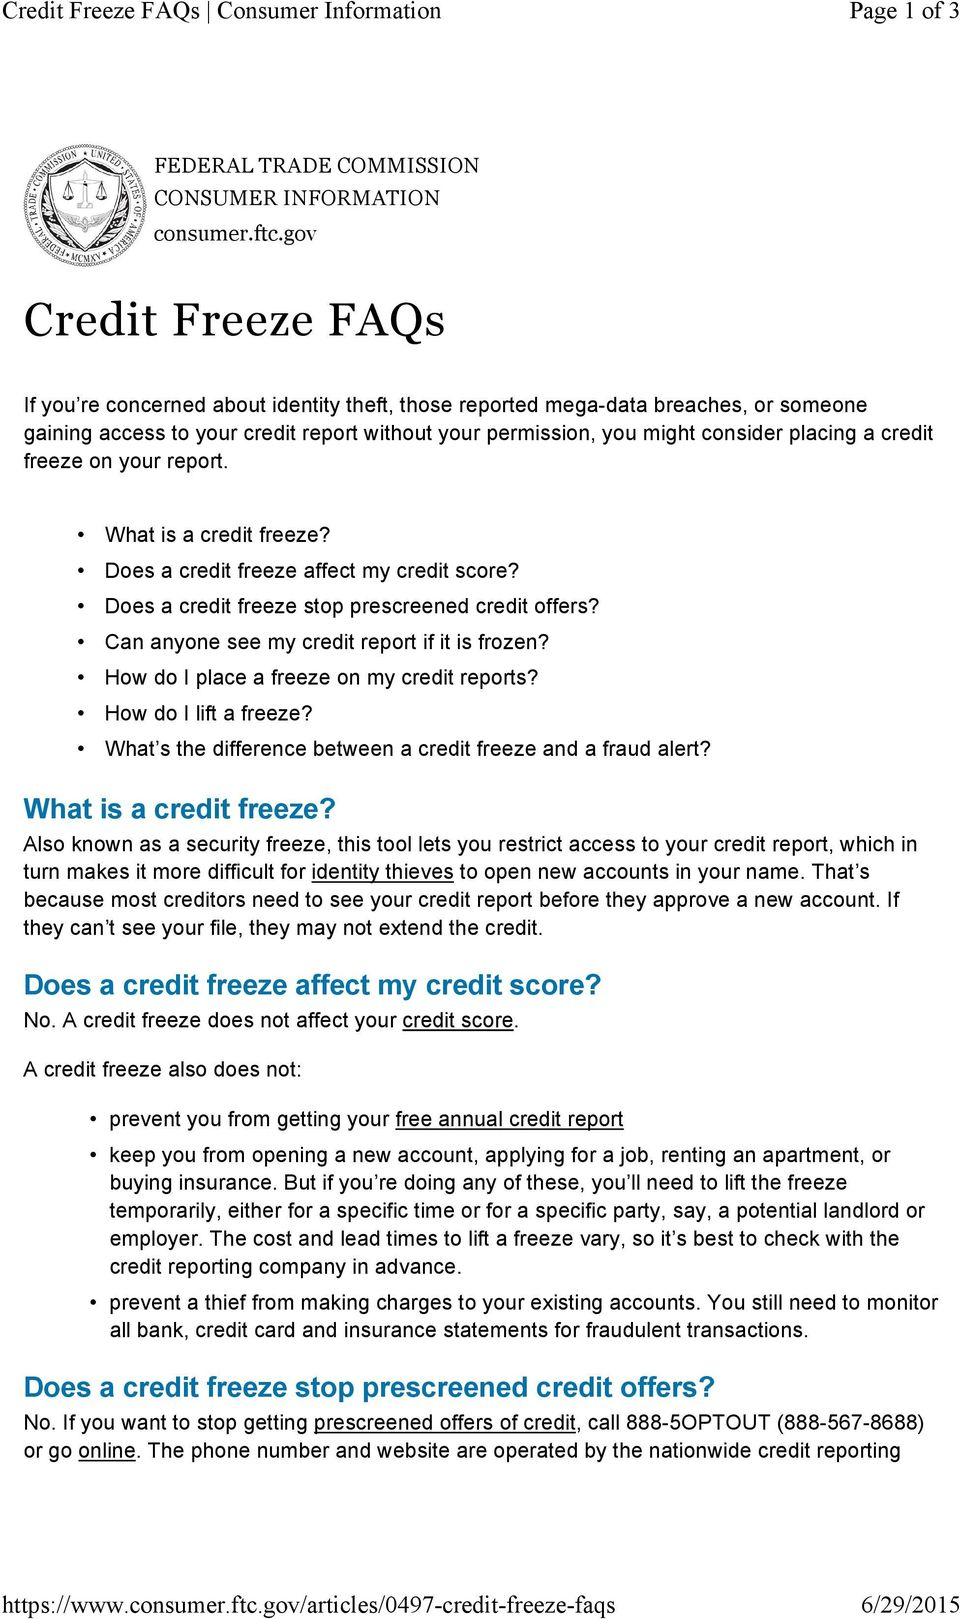 a credit freeze on your report. What is a credit freeze? Does a credit freeze affect my credit score? Does a credit freeze stop prescreened credit offers?